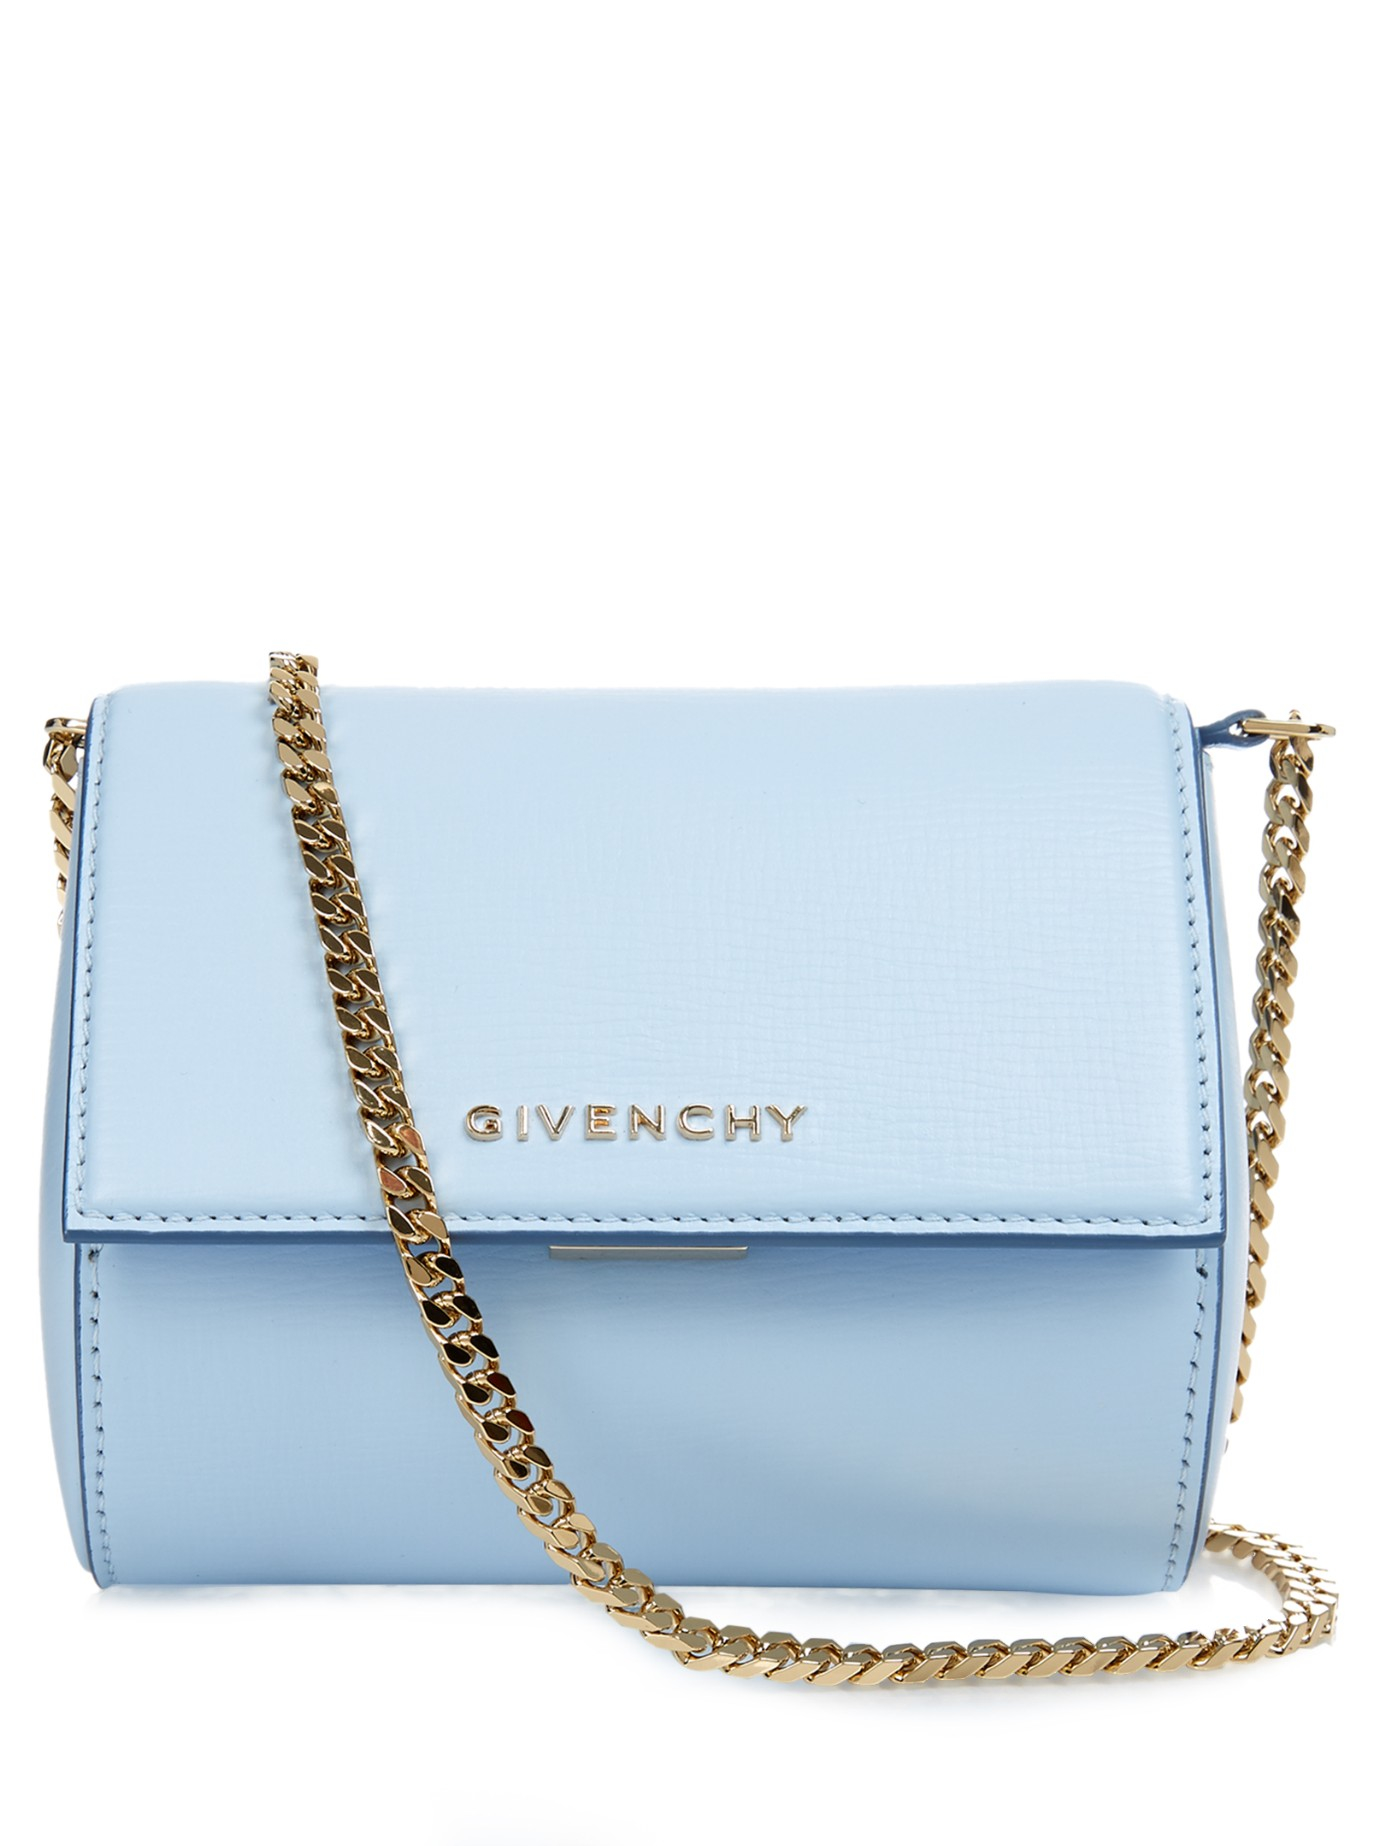 52439b04085 Givenchy Pandora Box Leather Cross-Body Bag in Blue - Lyst